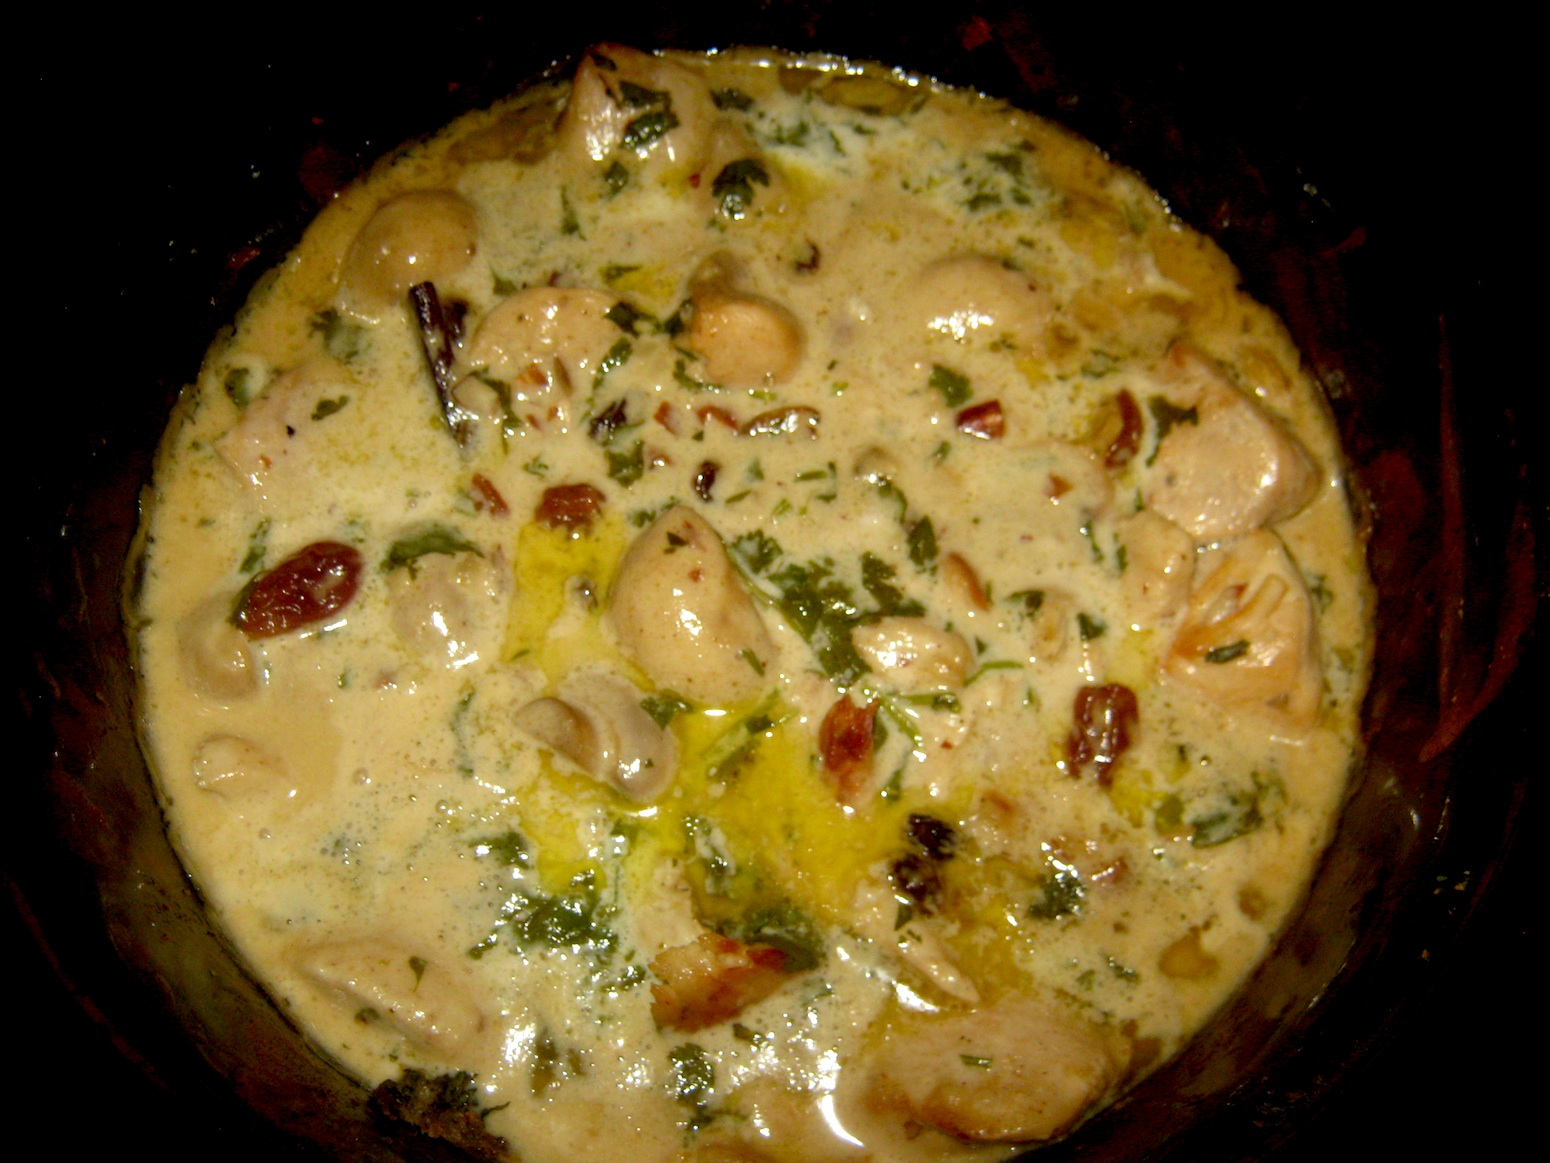 Moghlai Chicken with mushrooms, almonds and raisins